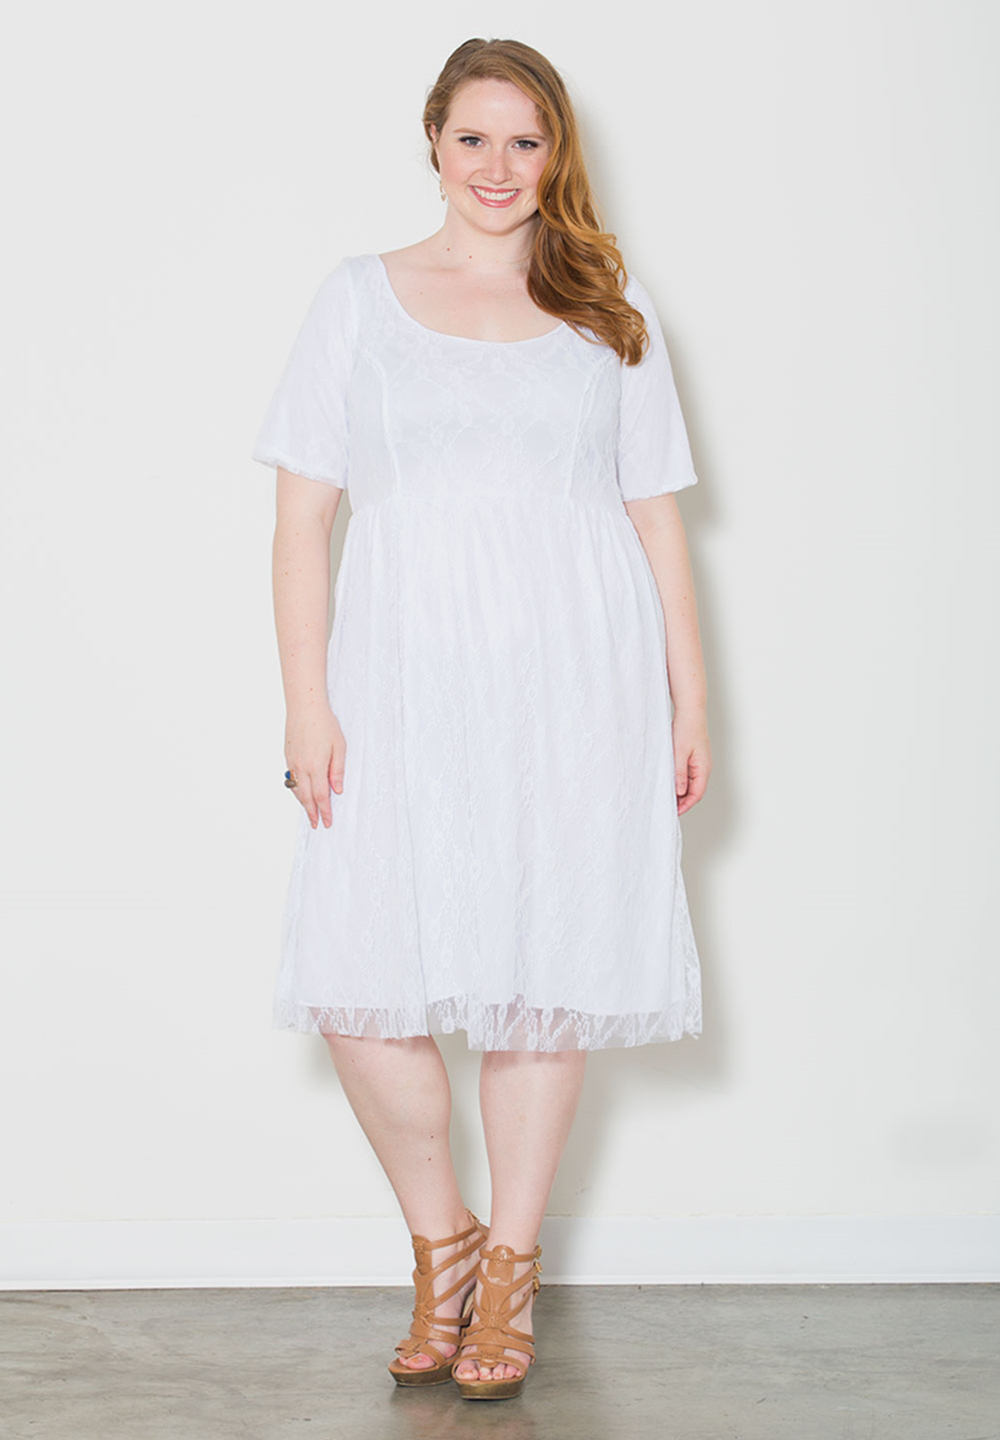 Lovely lace dresses are delicate and beautiful additions to your wardrobe while easygoing and flattering shift dresses are the grab-and-go staples you need in your closet. Turn heads this season with flirty and flowy maxi dresses that elevate any casual look.